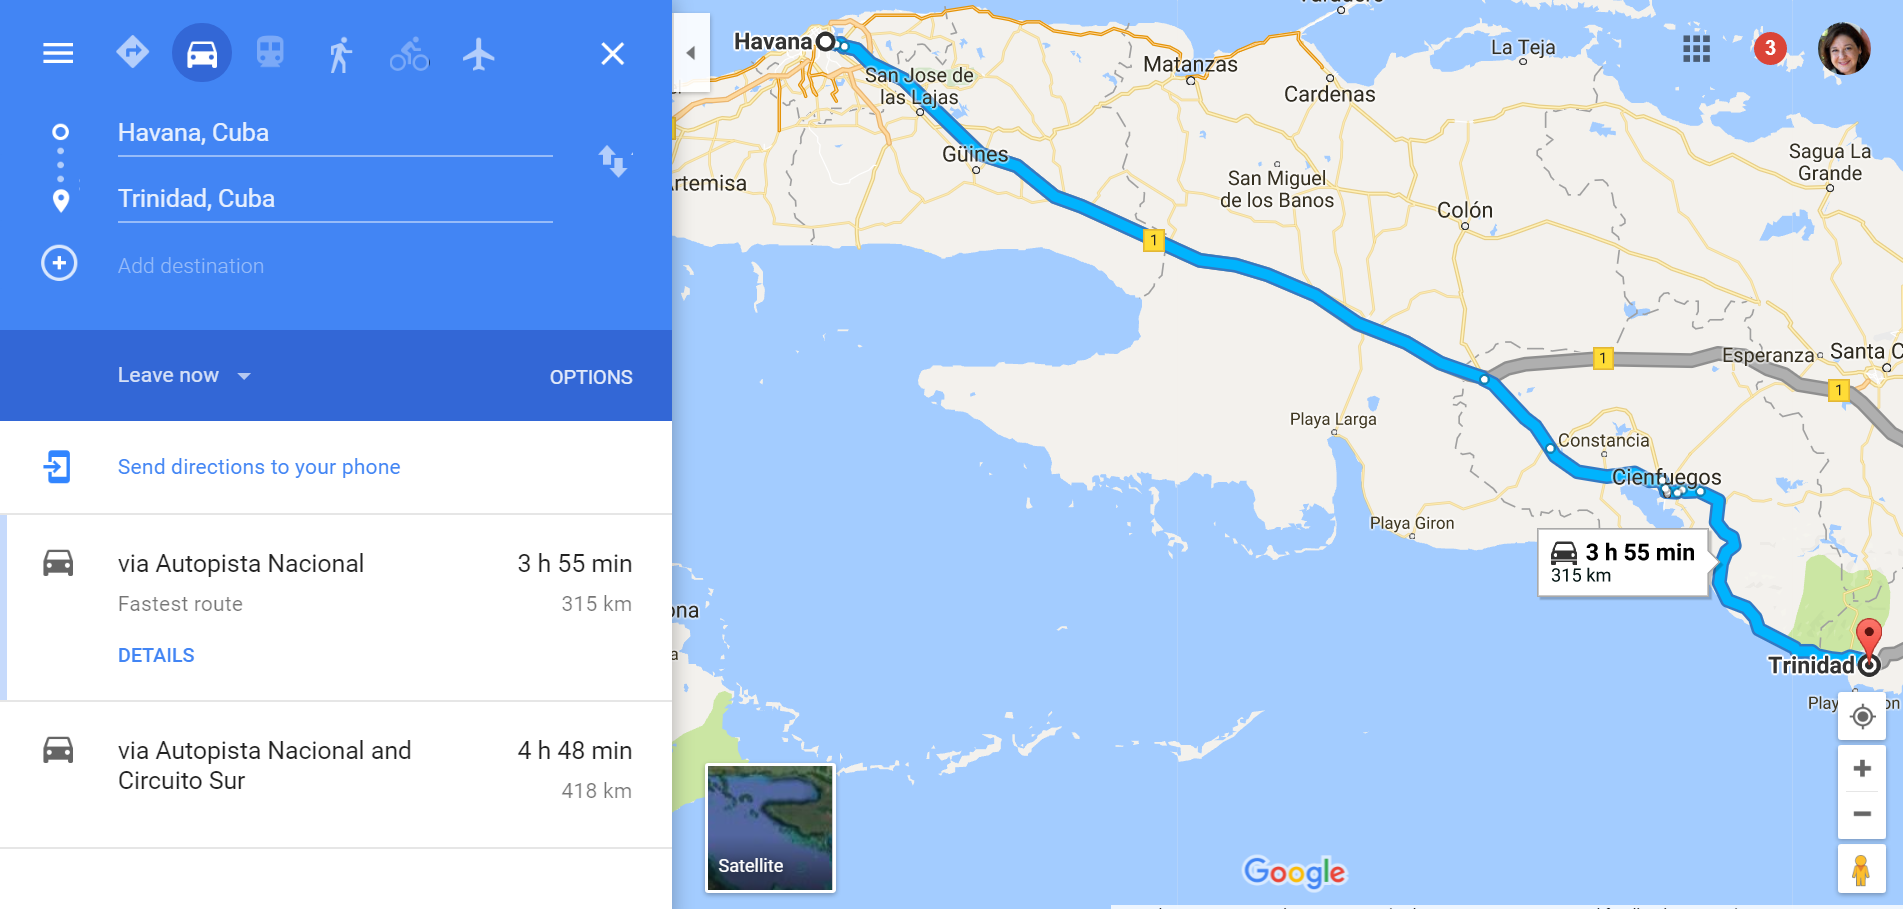 Google Maps shows the route from Havana to Trinidad in Cuba.